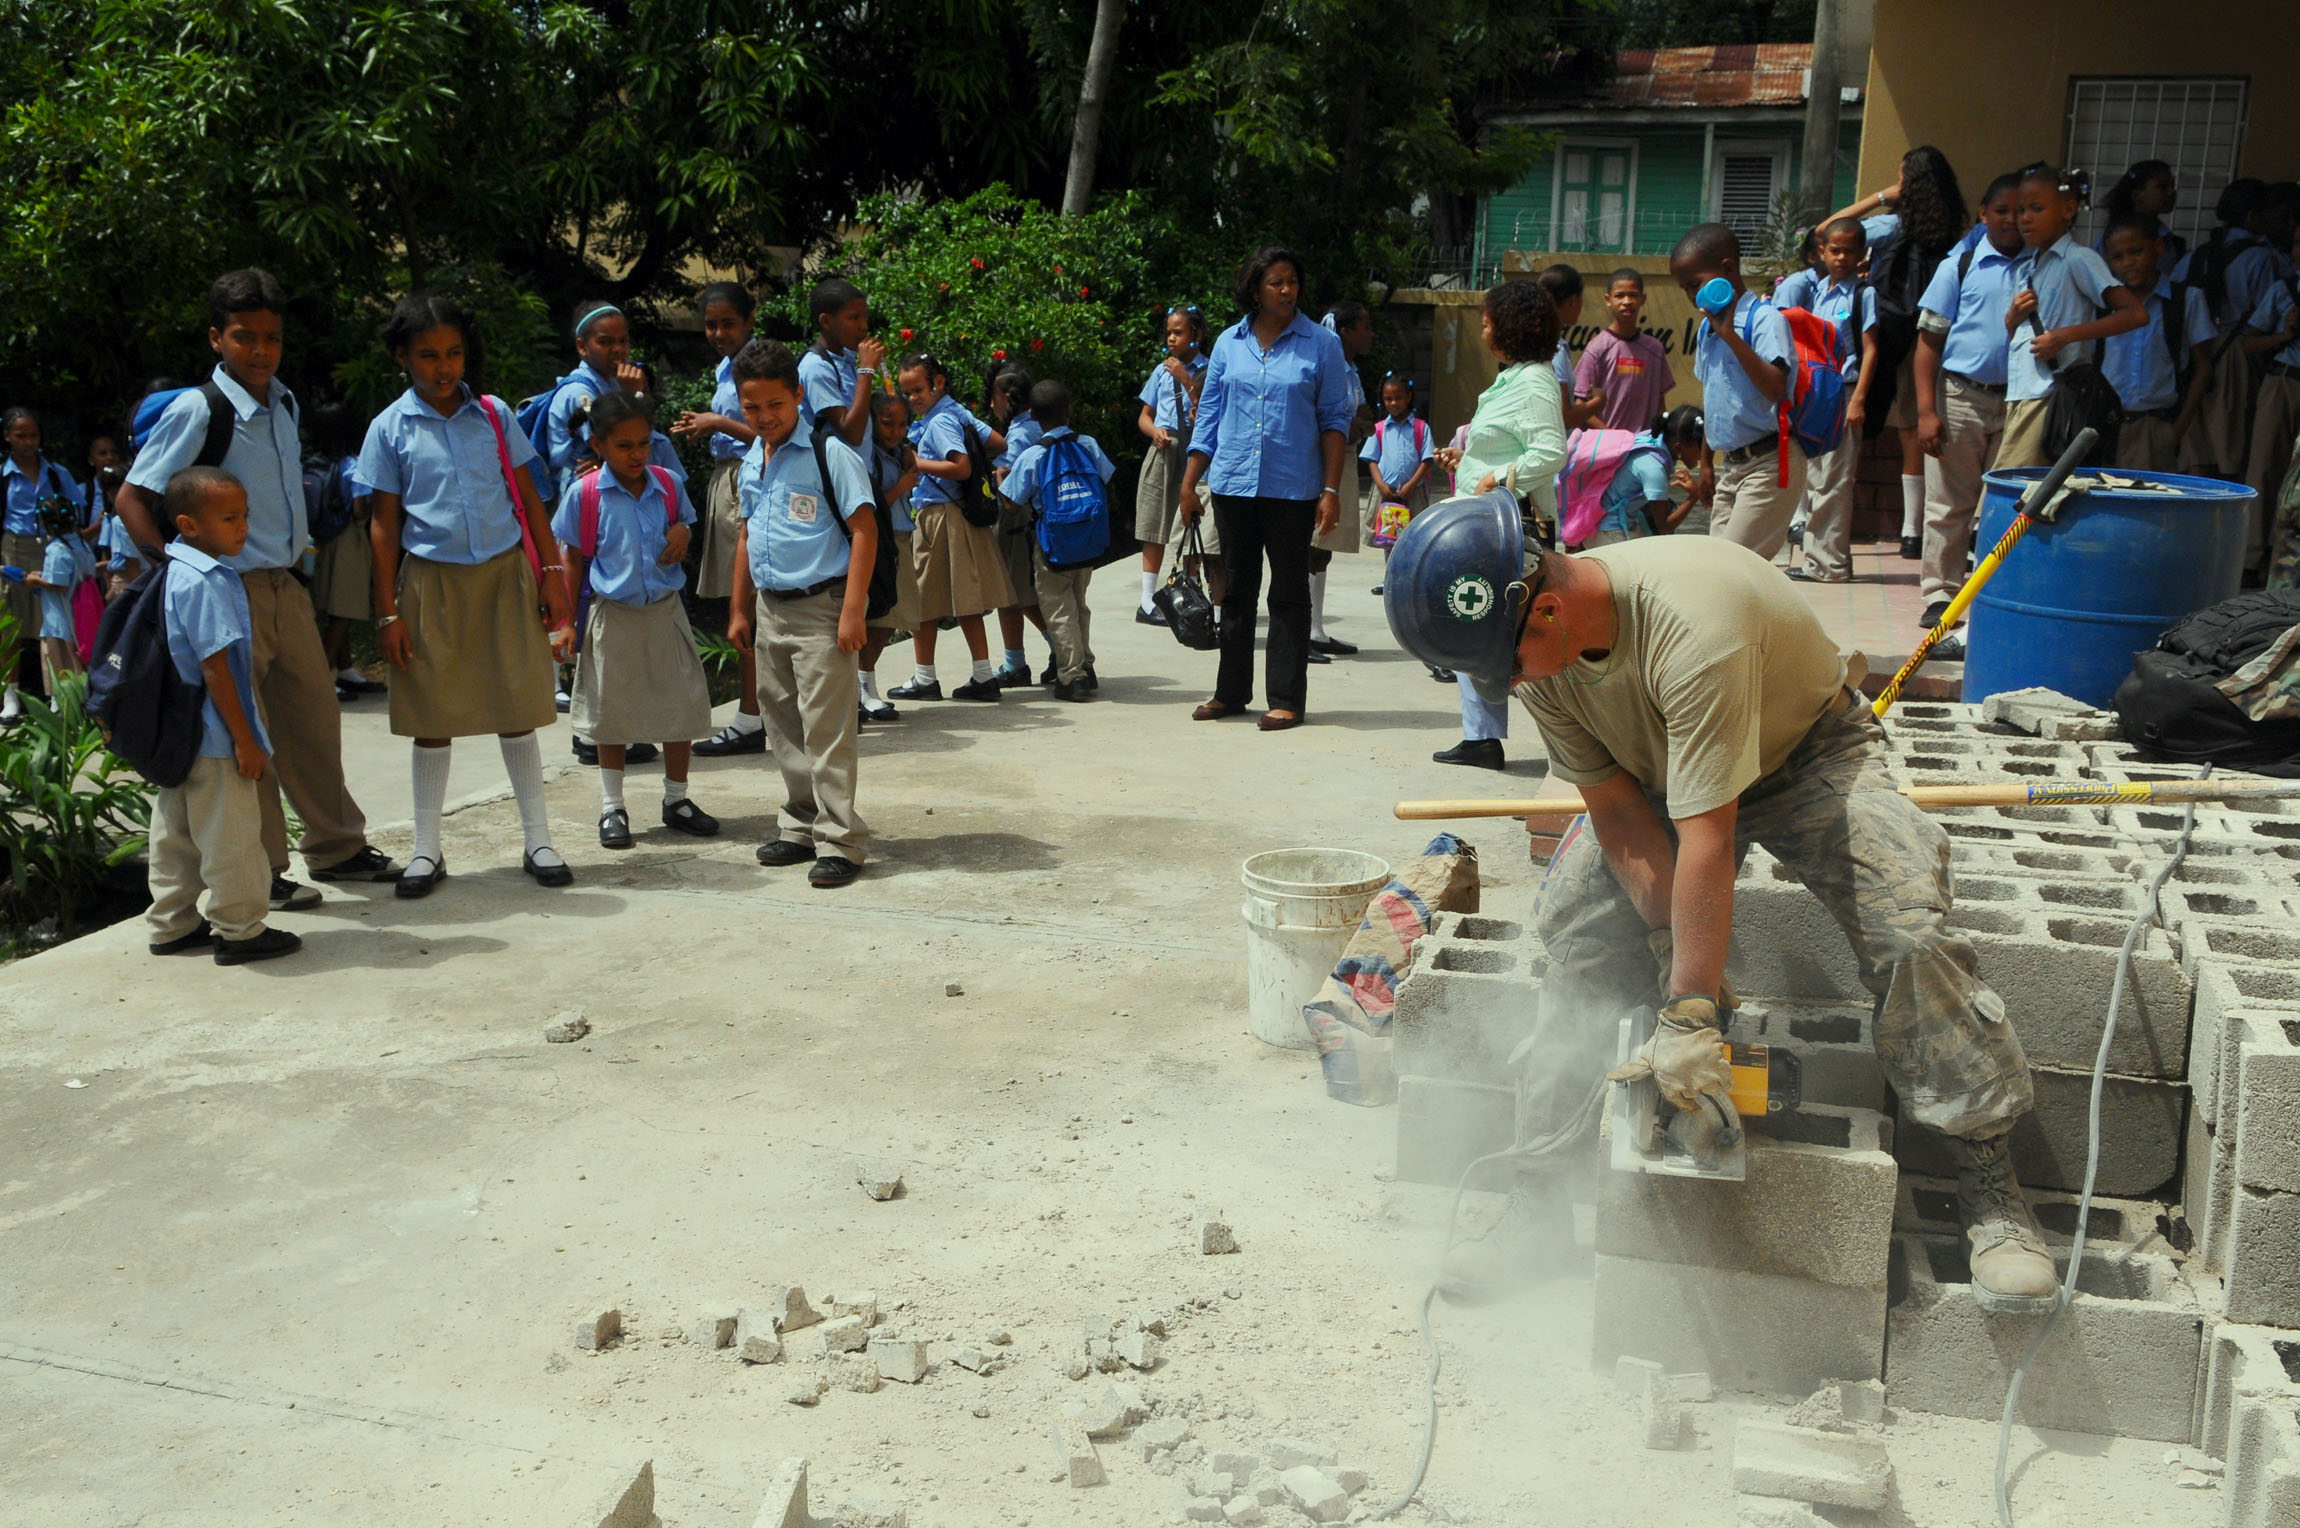 Socorro sanchez primary school during a community service project